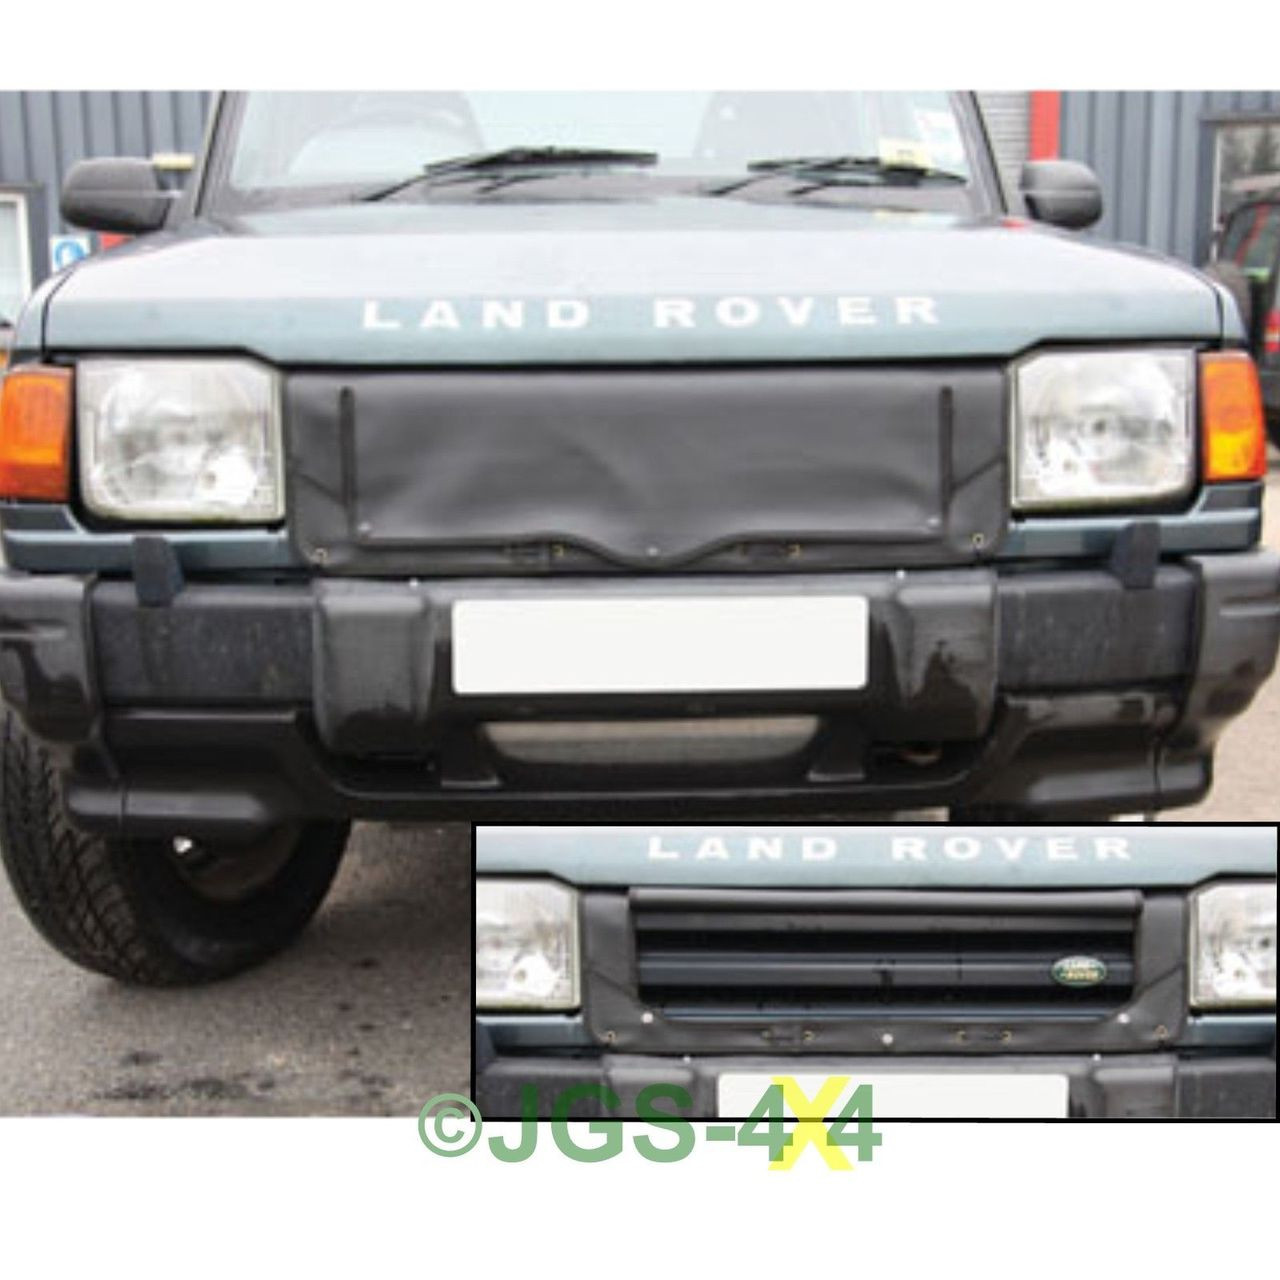 1998 Land Rover Discovery Interior: Land Rover Discovery 1 Radiator Muff Grill Cover 300TDi